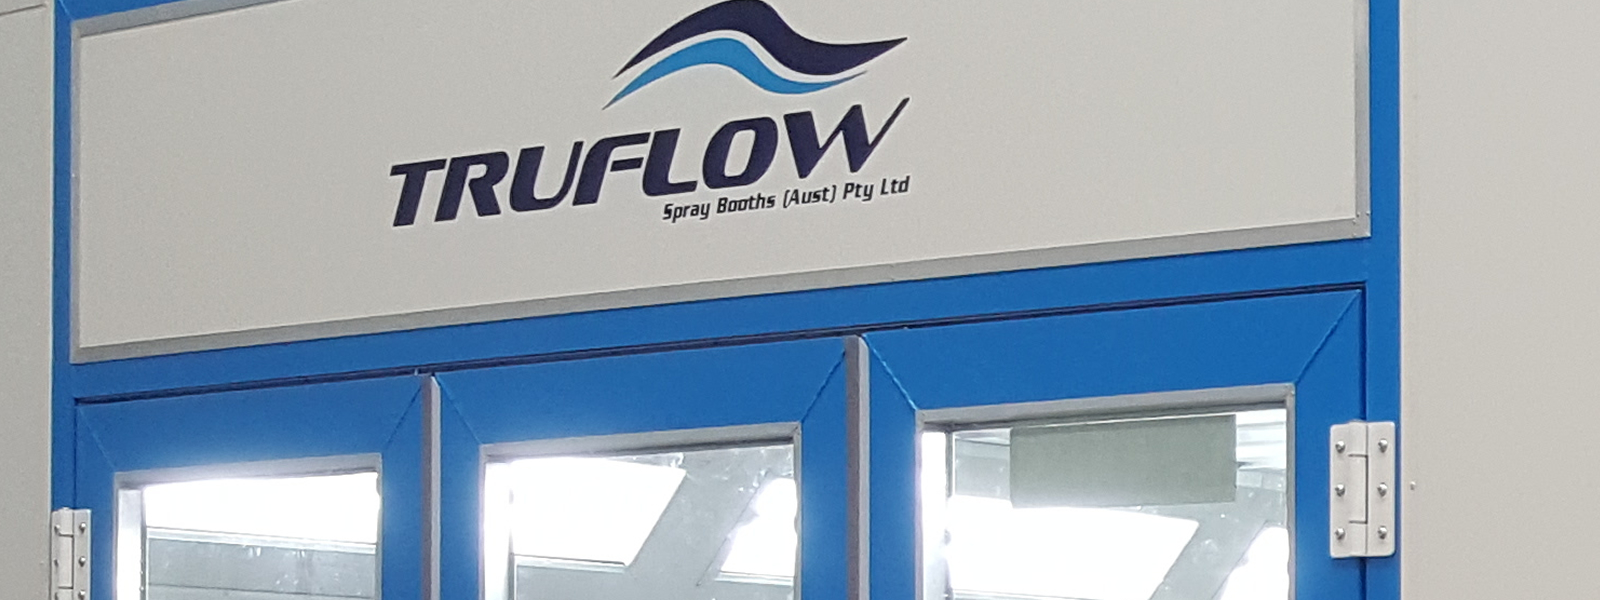 Truflow Spray Booths facia panel